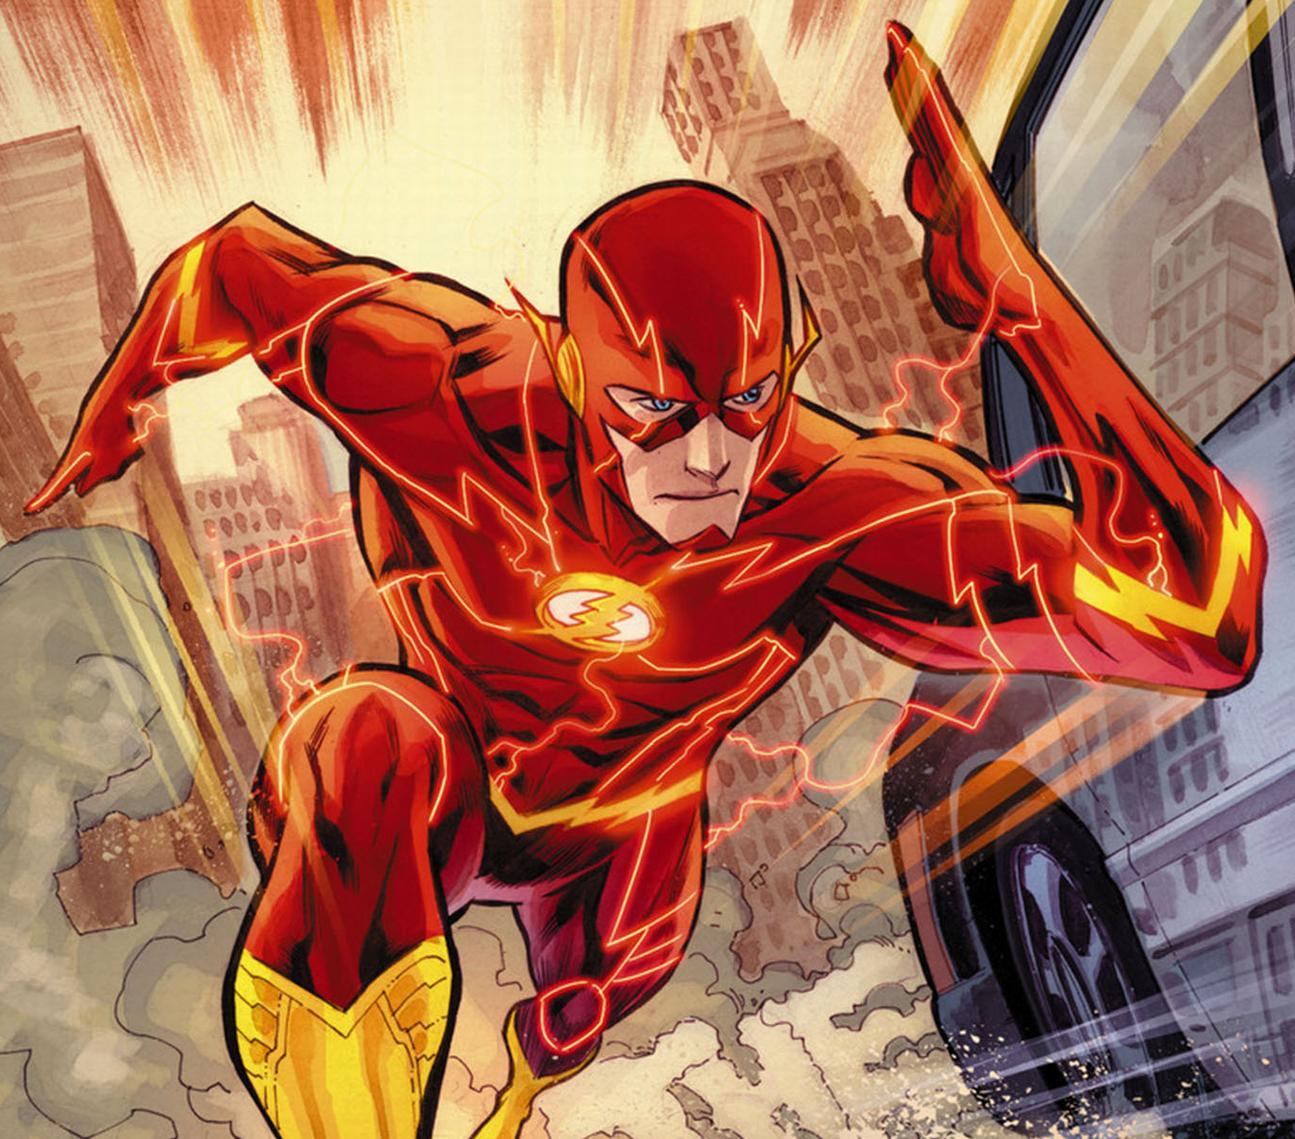 A comic book image of Barry Allen as The Flash running down a street.